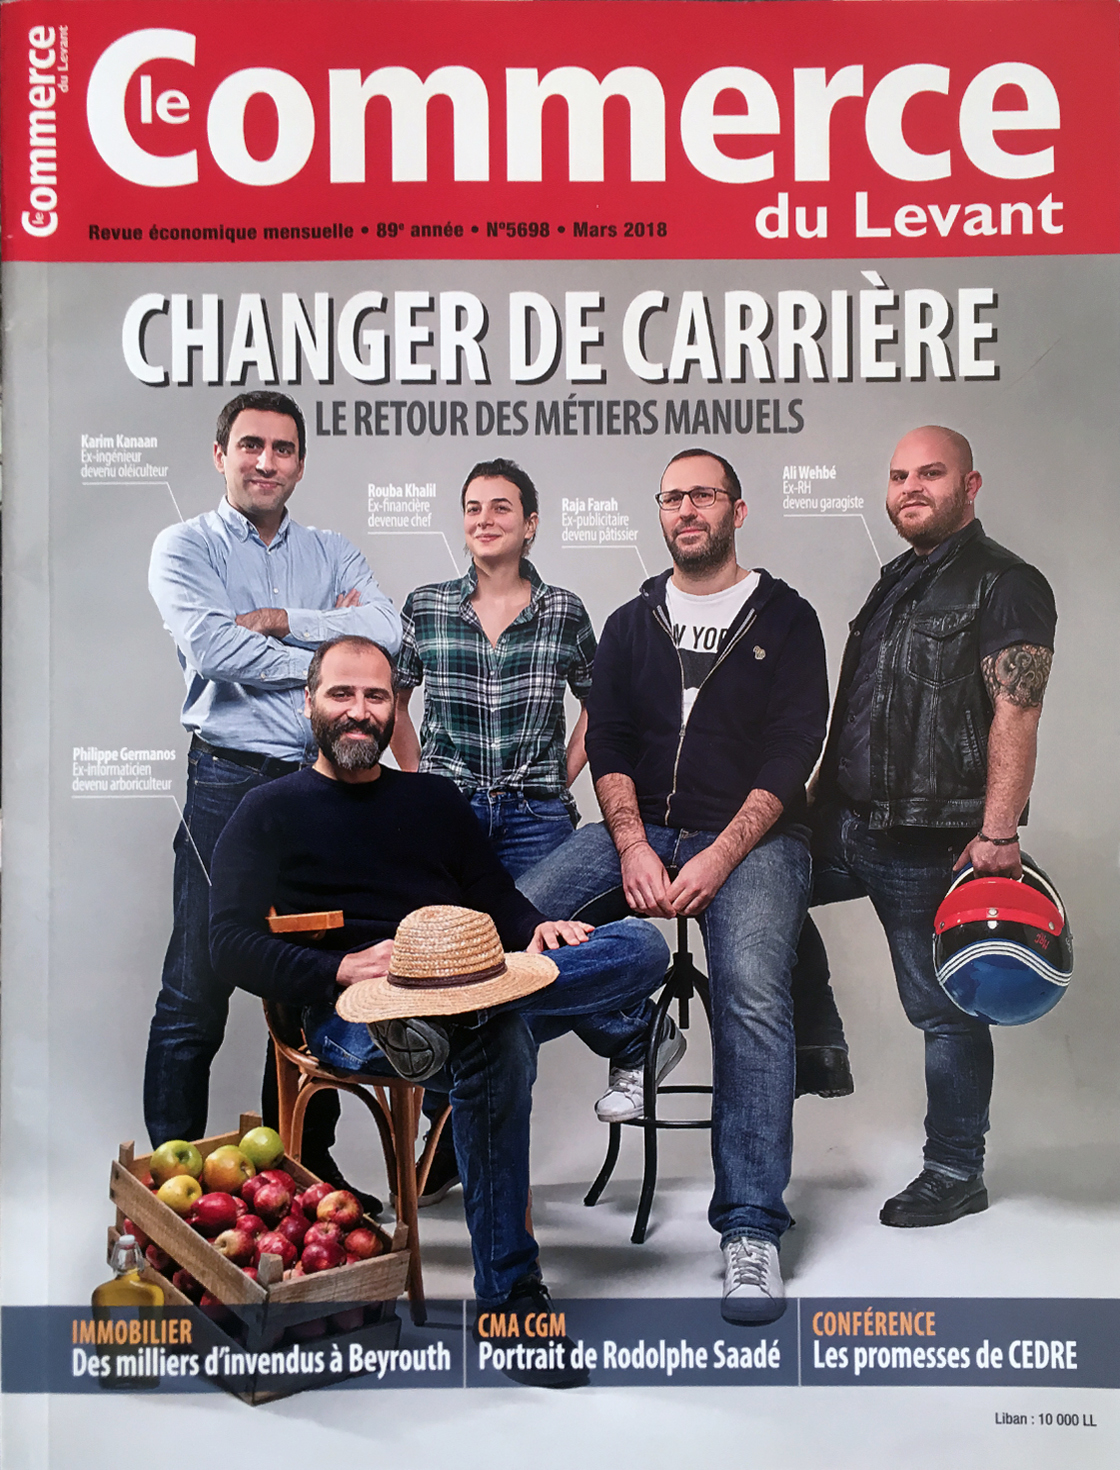 le commerce du levant02.03.2018 -